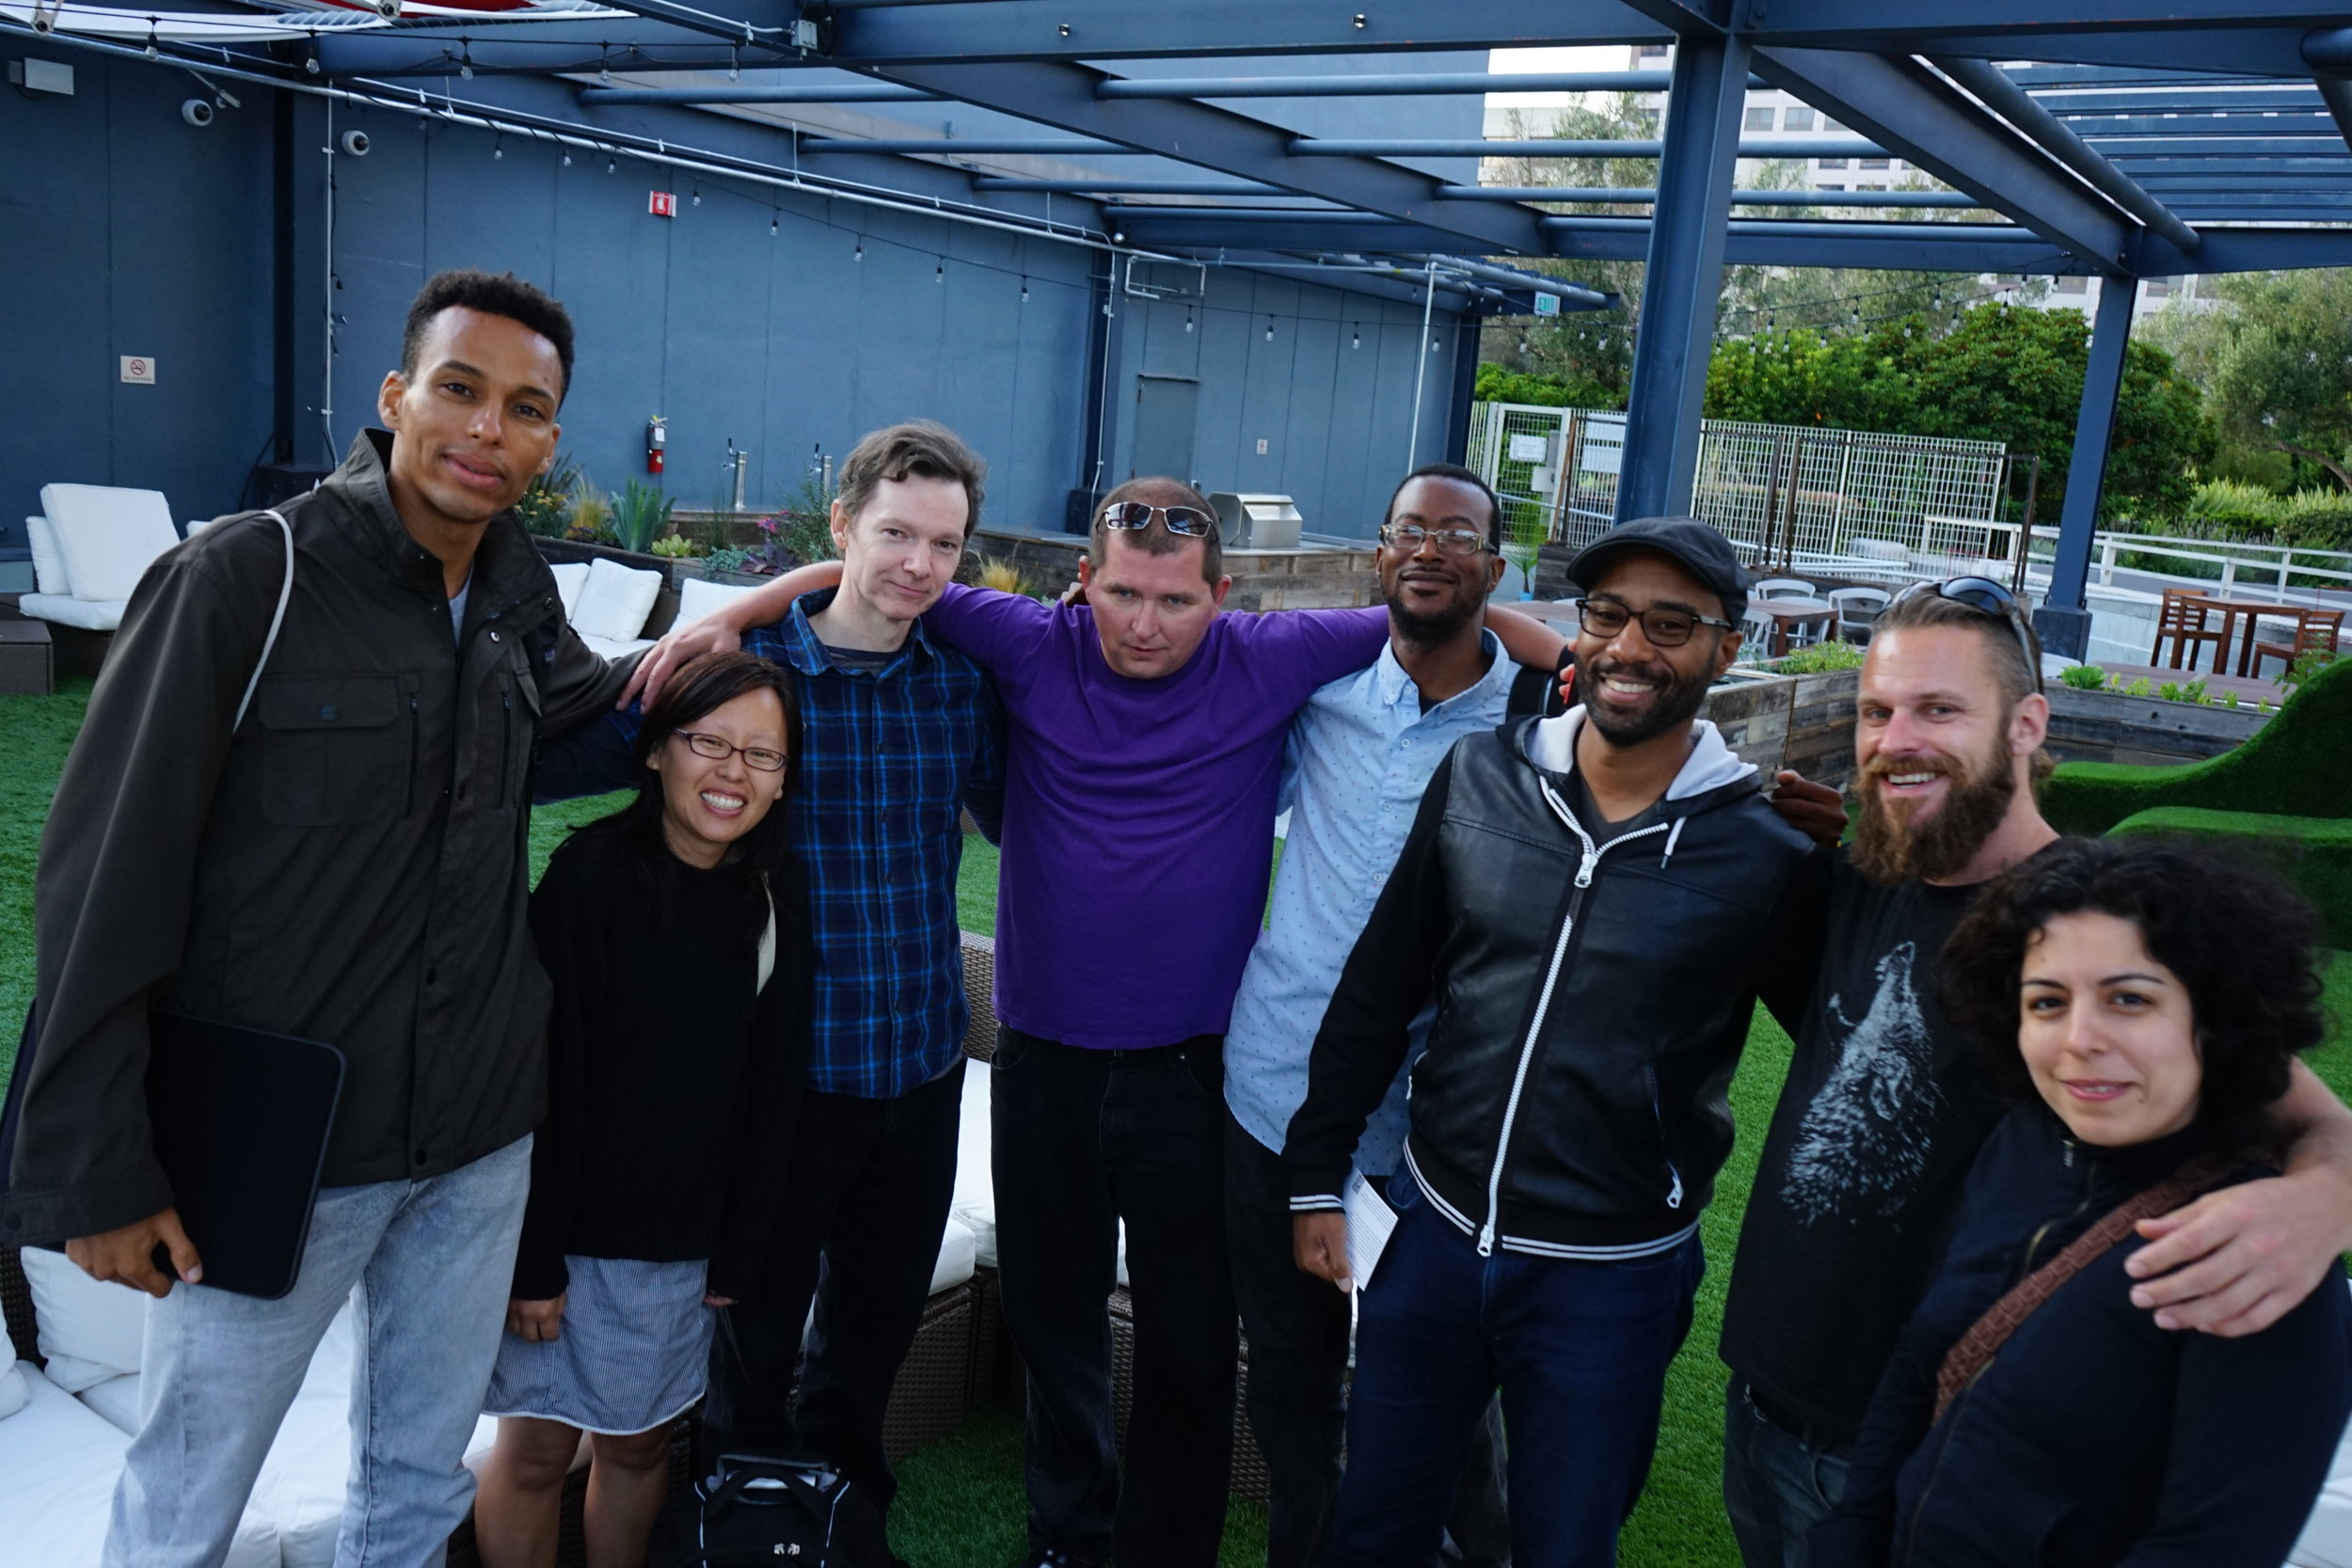 Gryp Media Creators Meetup started on the  @Port Workspaces roof deck in 2017, Oakland, CA, USA